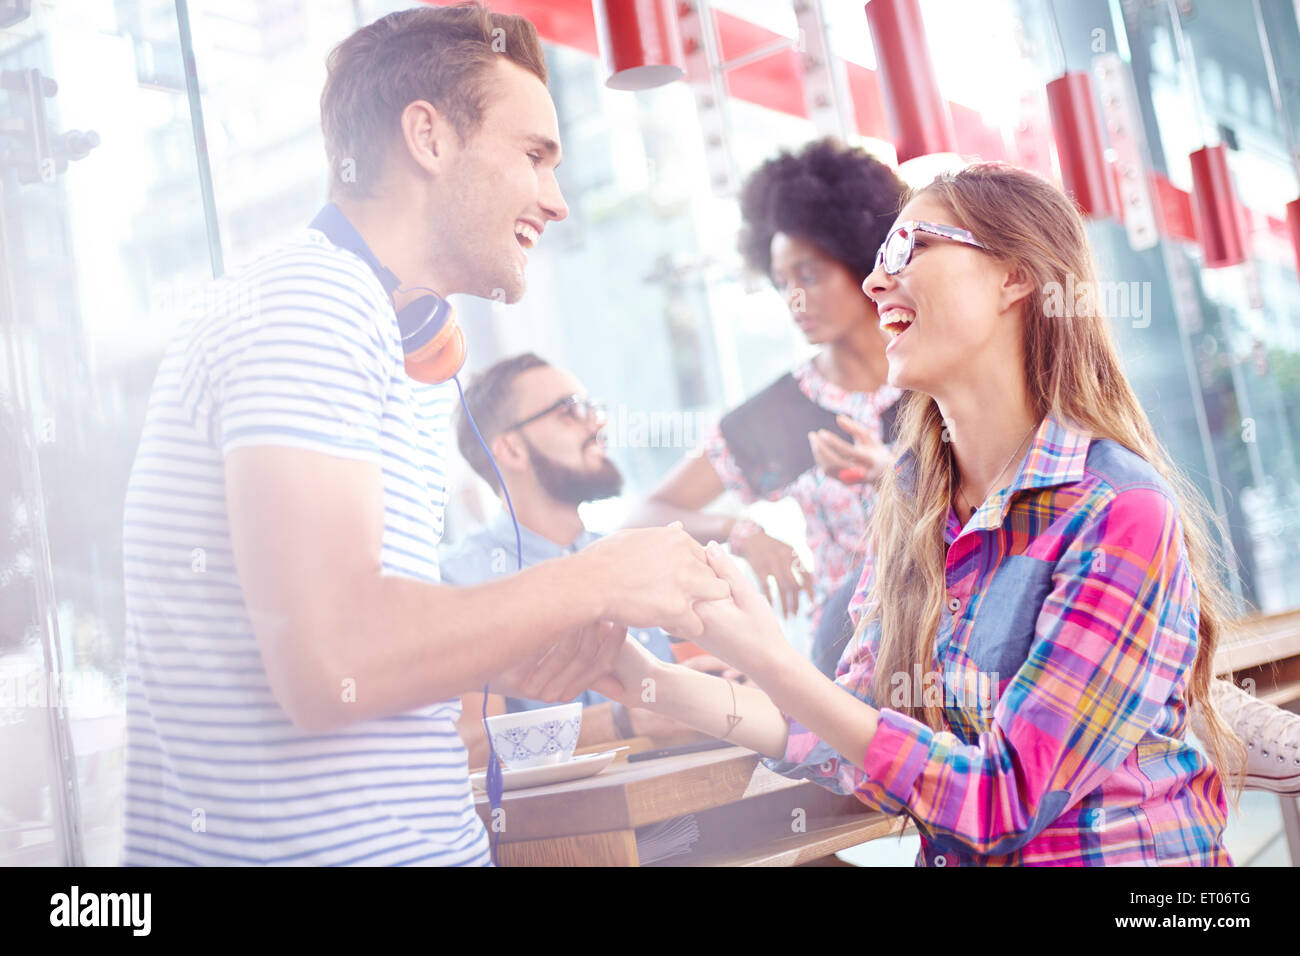 Couple laughing and holding hands in cafe - Stock Image